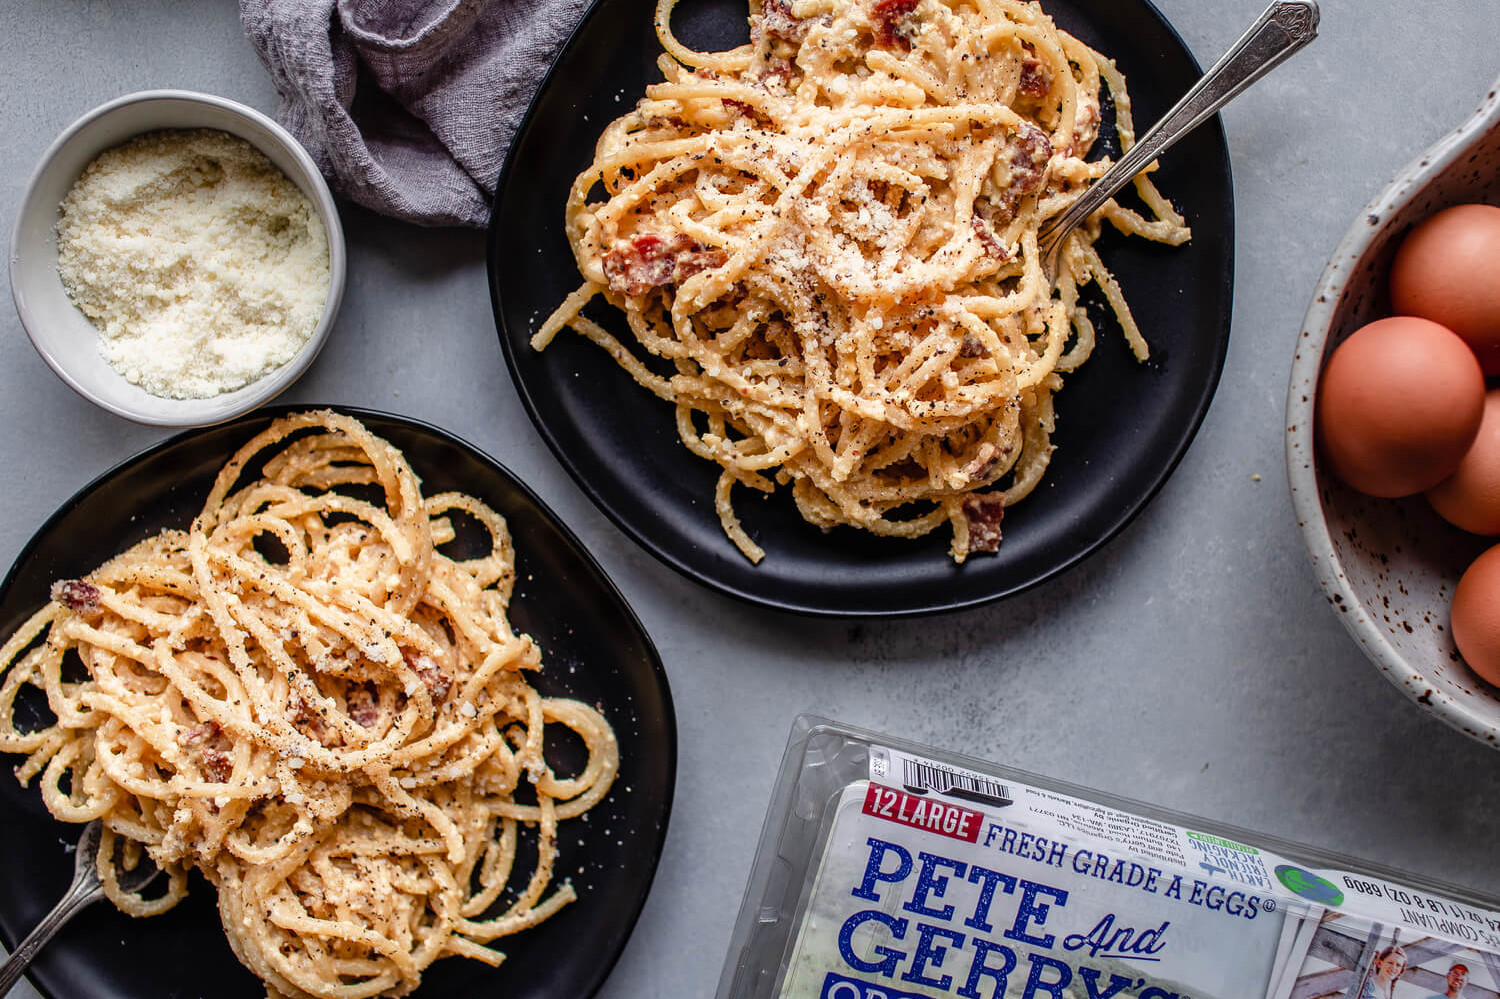 This pasta carbonara is a classic, thanks to the delicious and rich, egg-based sauce. We topped our pasta with parmesan cheese, diced bacon, and fresh black pepper. | peteandgerrys.com